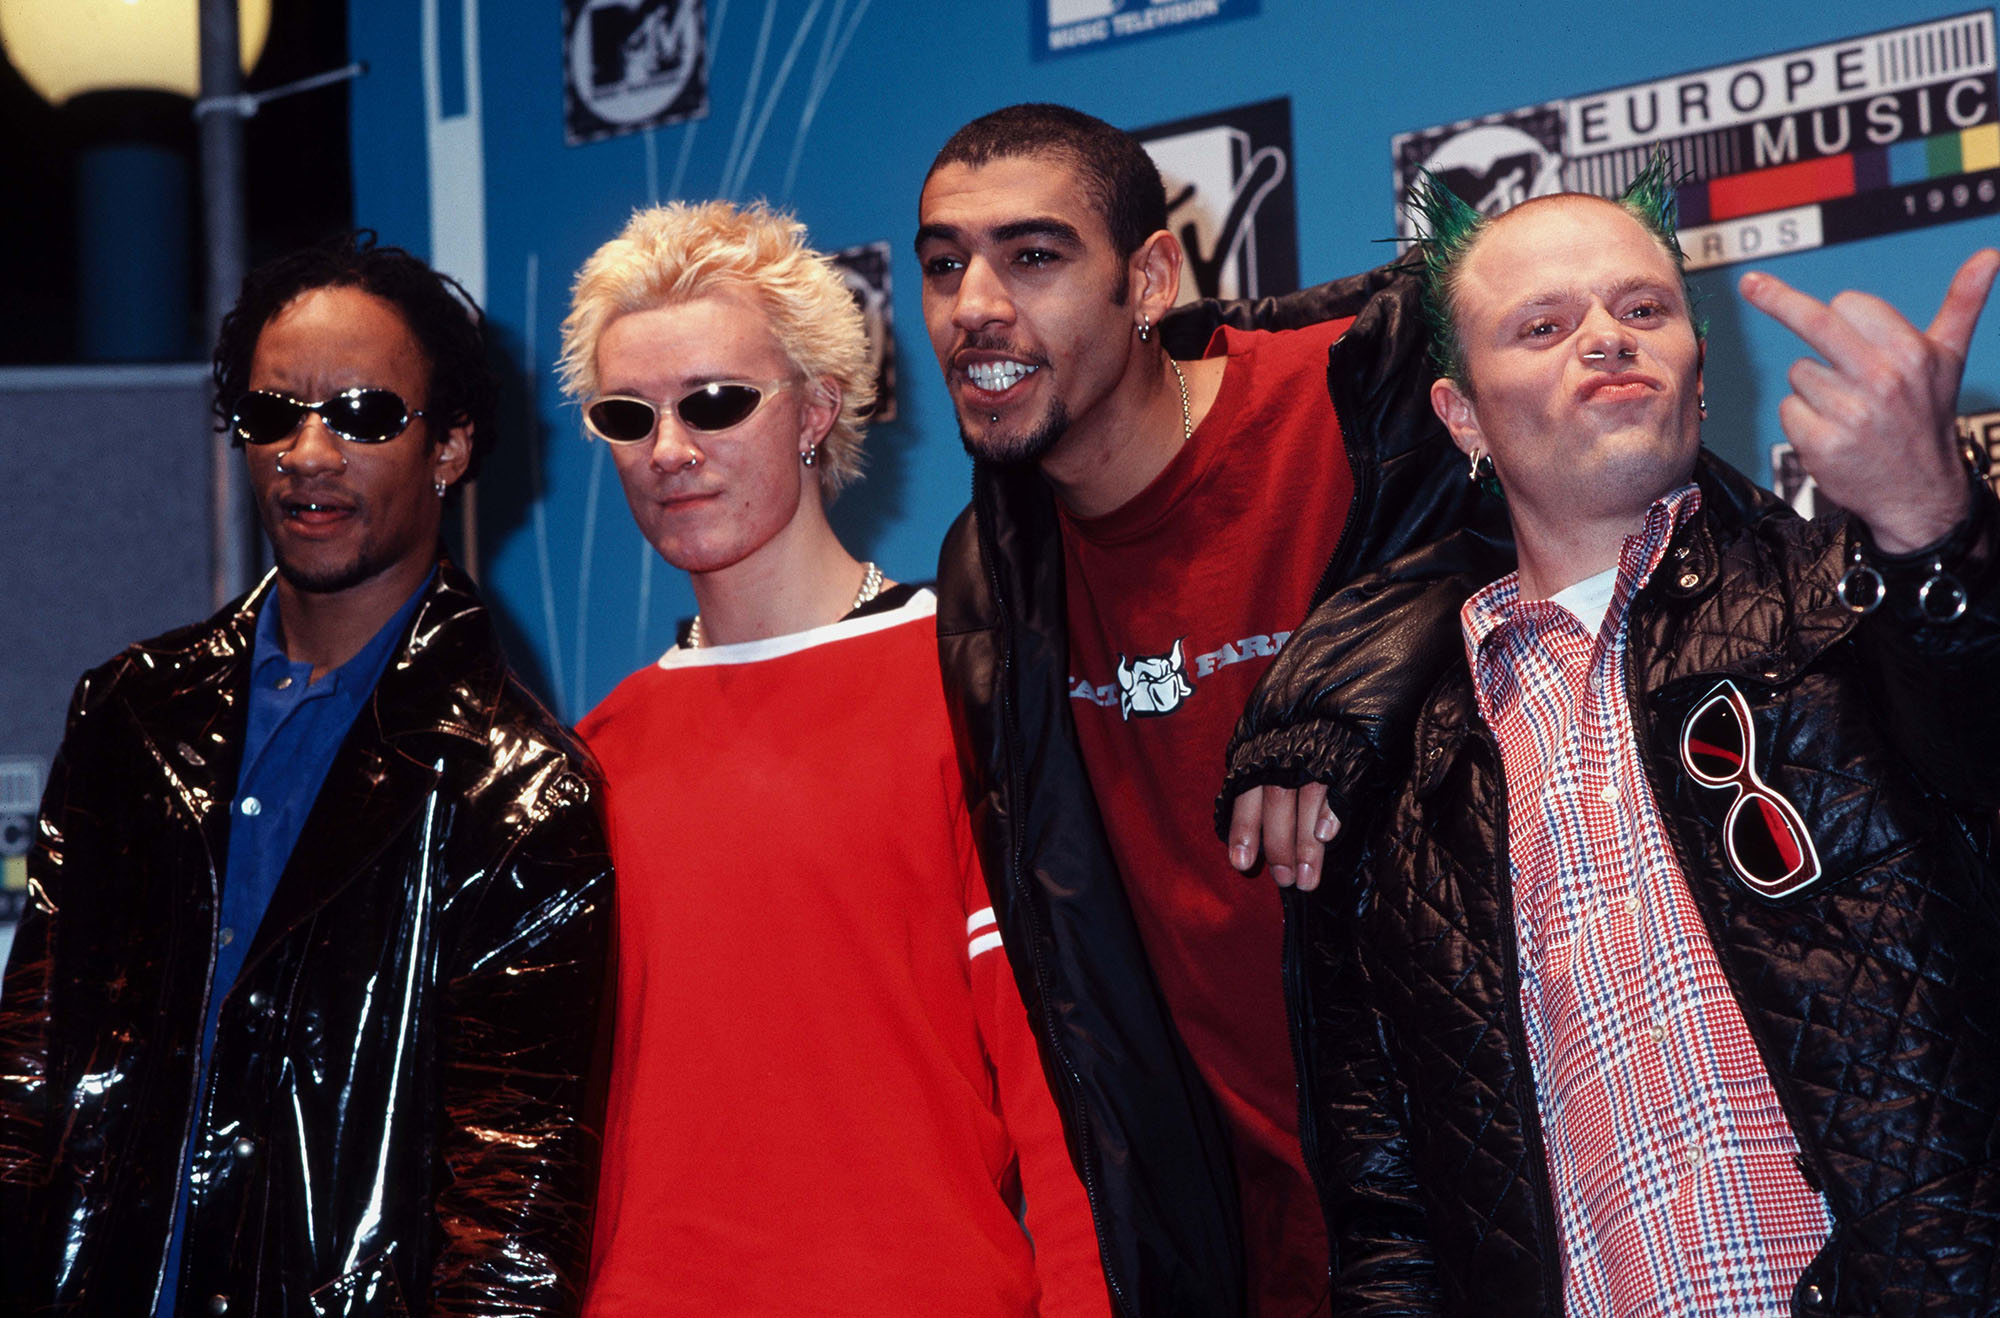 The Prodigy's 'Firestarter': Behind-the-scenes on the iconic video shoot